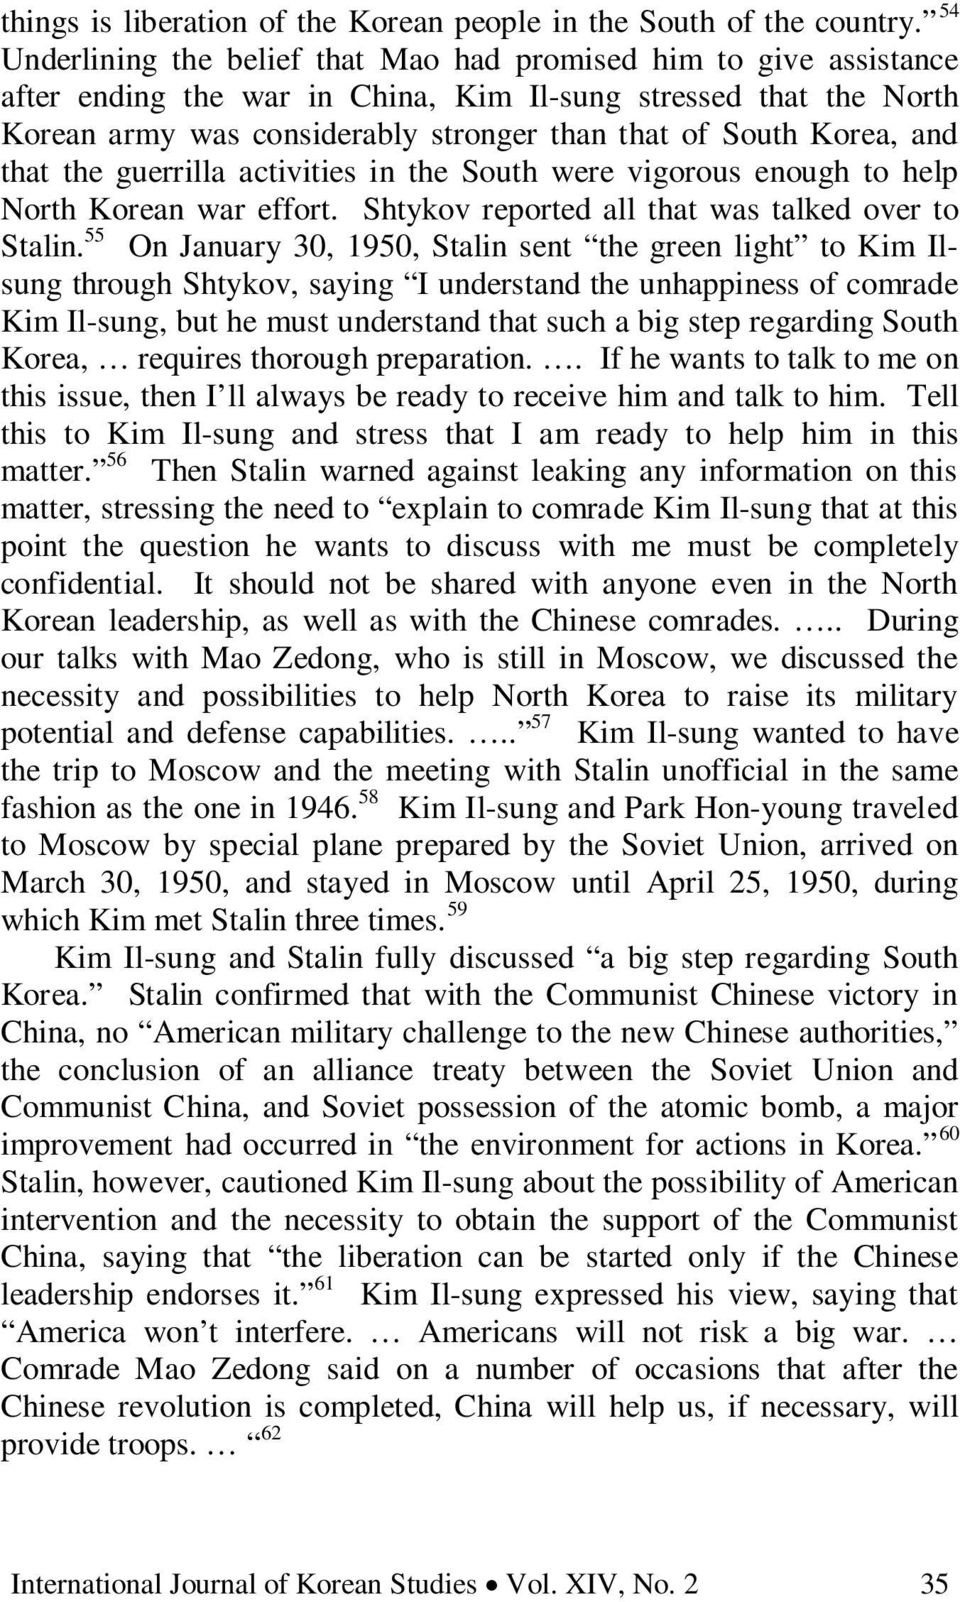 Korea, and that the guerrilla activities in the South were vigorous enough to help North Korean war effort. Shtykov reported all that was talked over to Stalin.